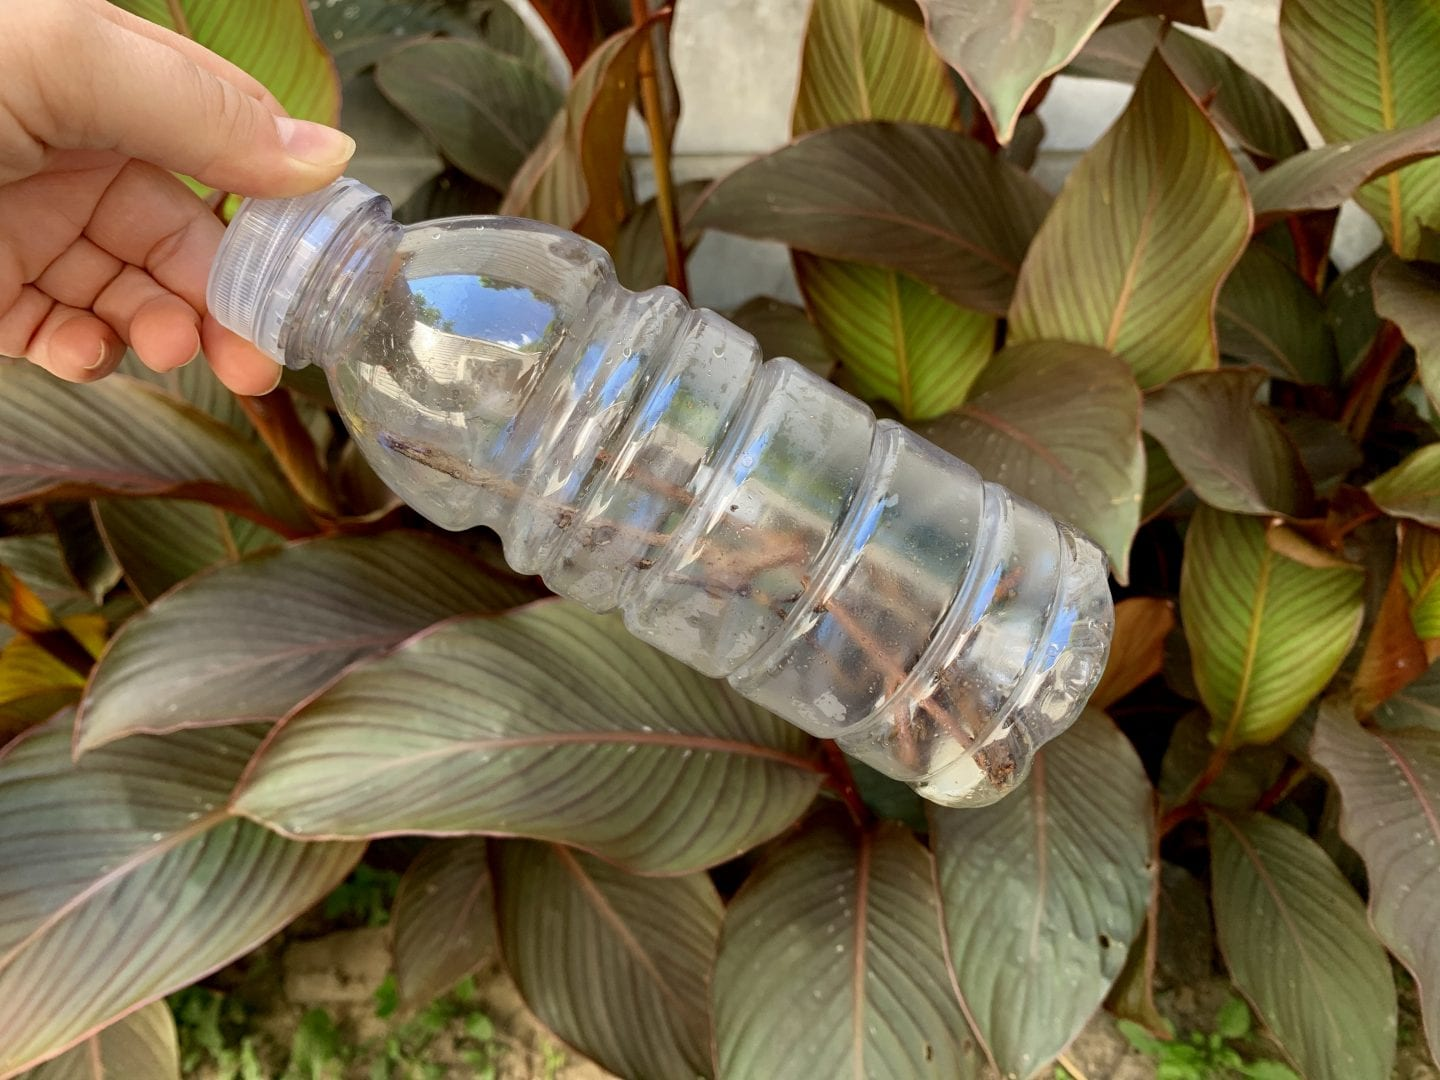 hand holding a plastic bottle with sticks and rocks inside in front of green plants